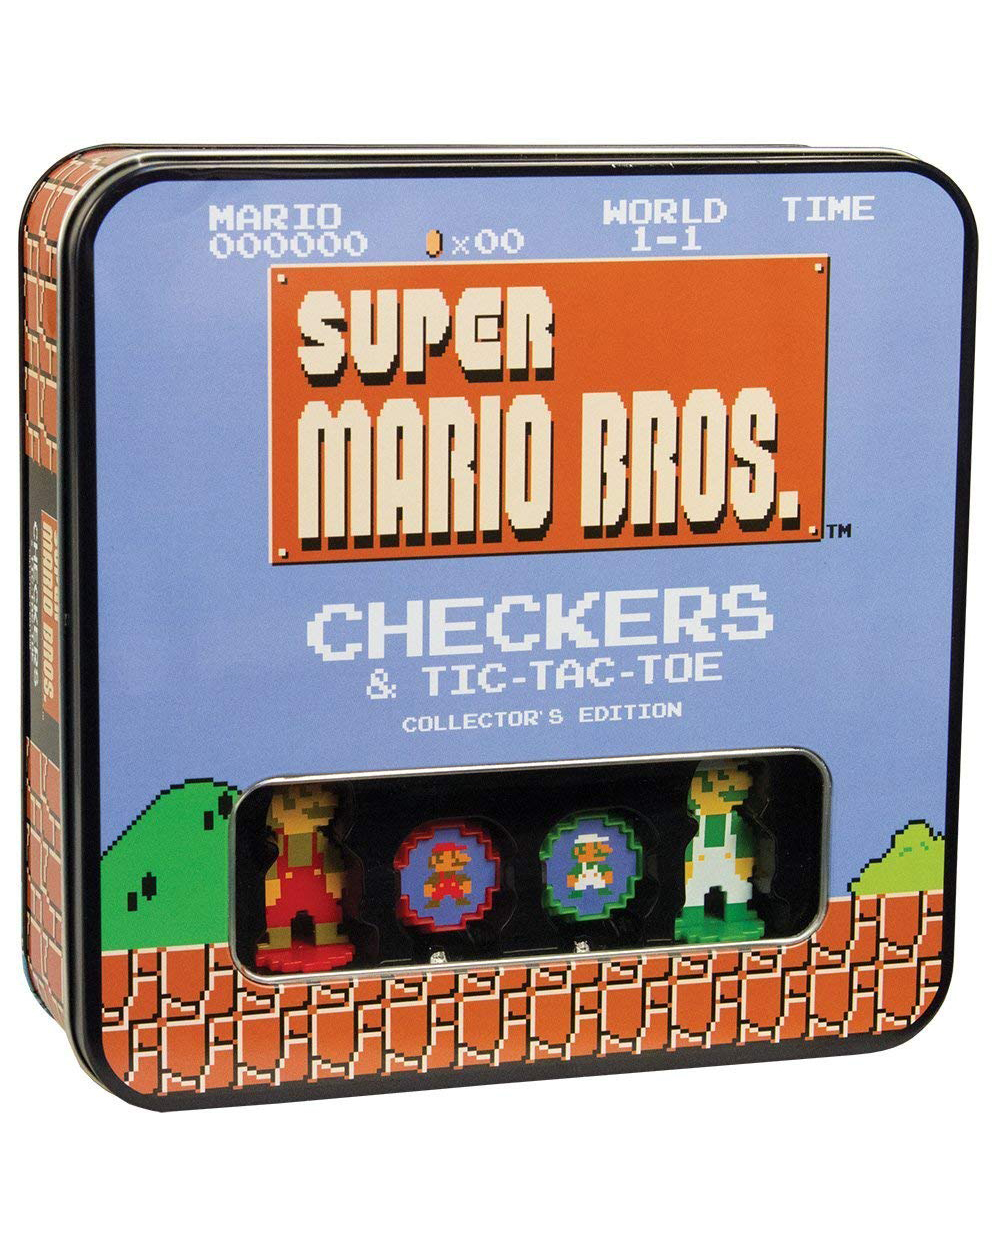 Super Mario Bros. Checker and Tic-Tac-Toe Collector's Edition Game